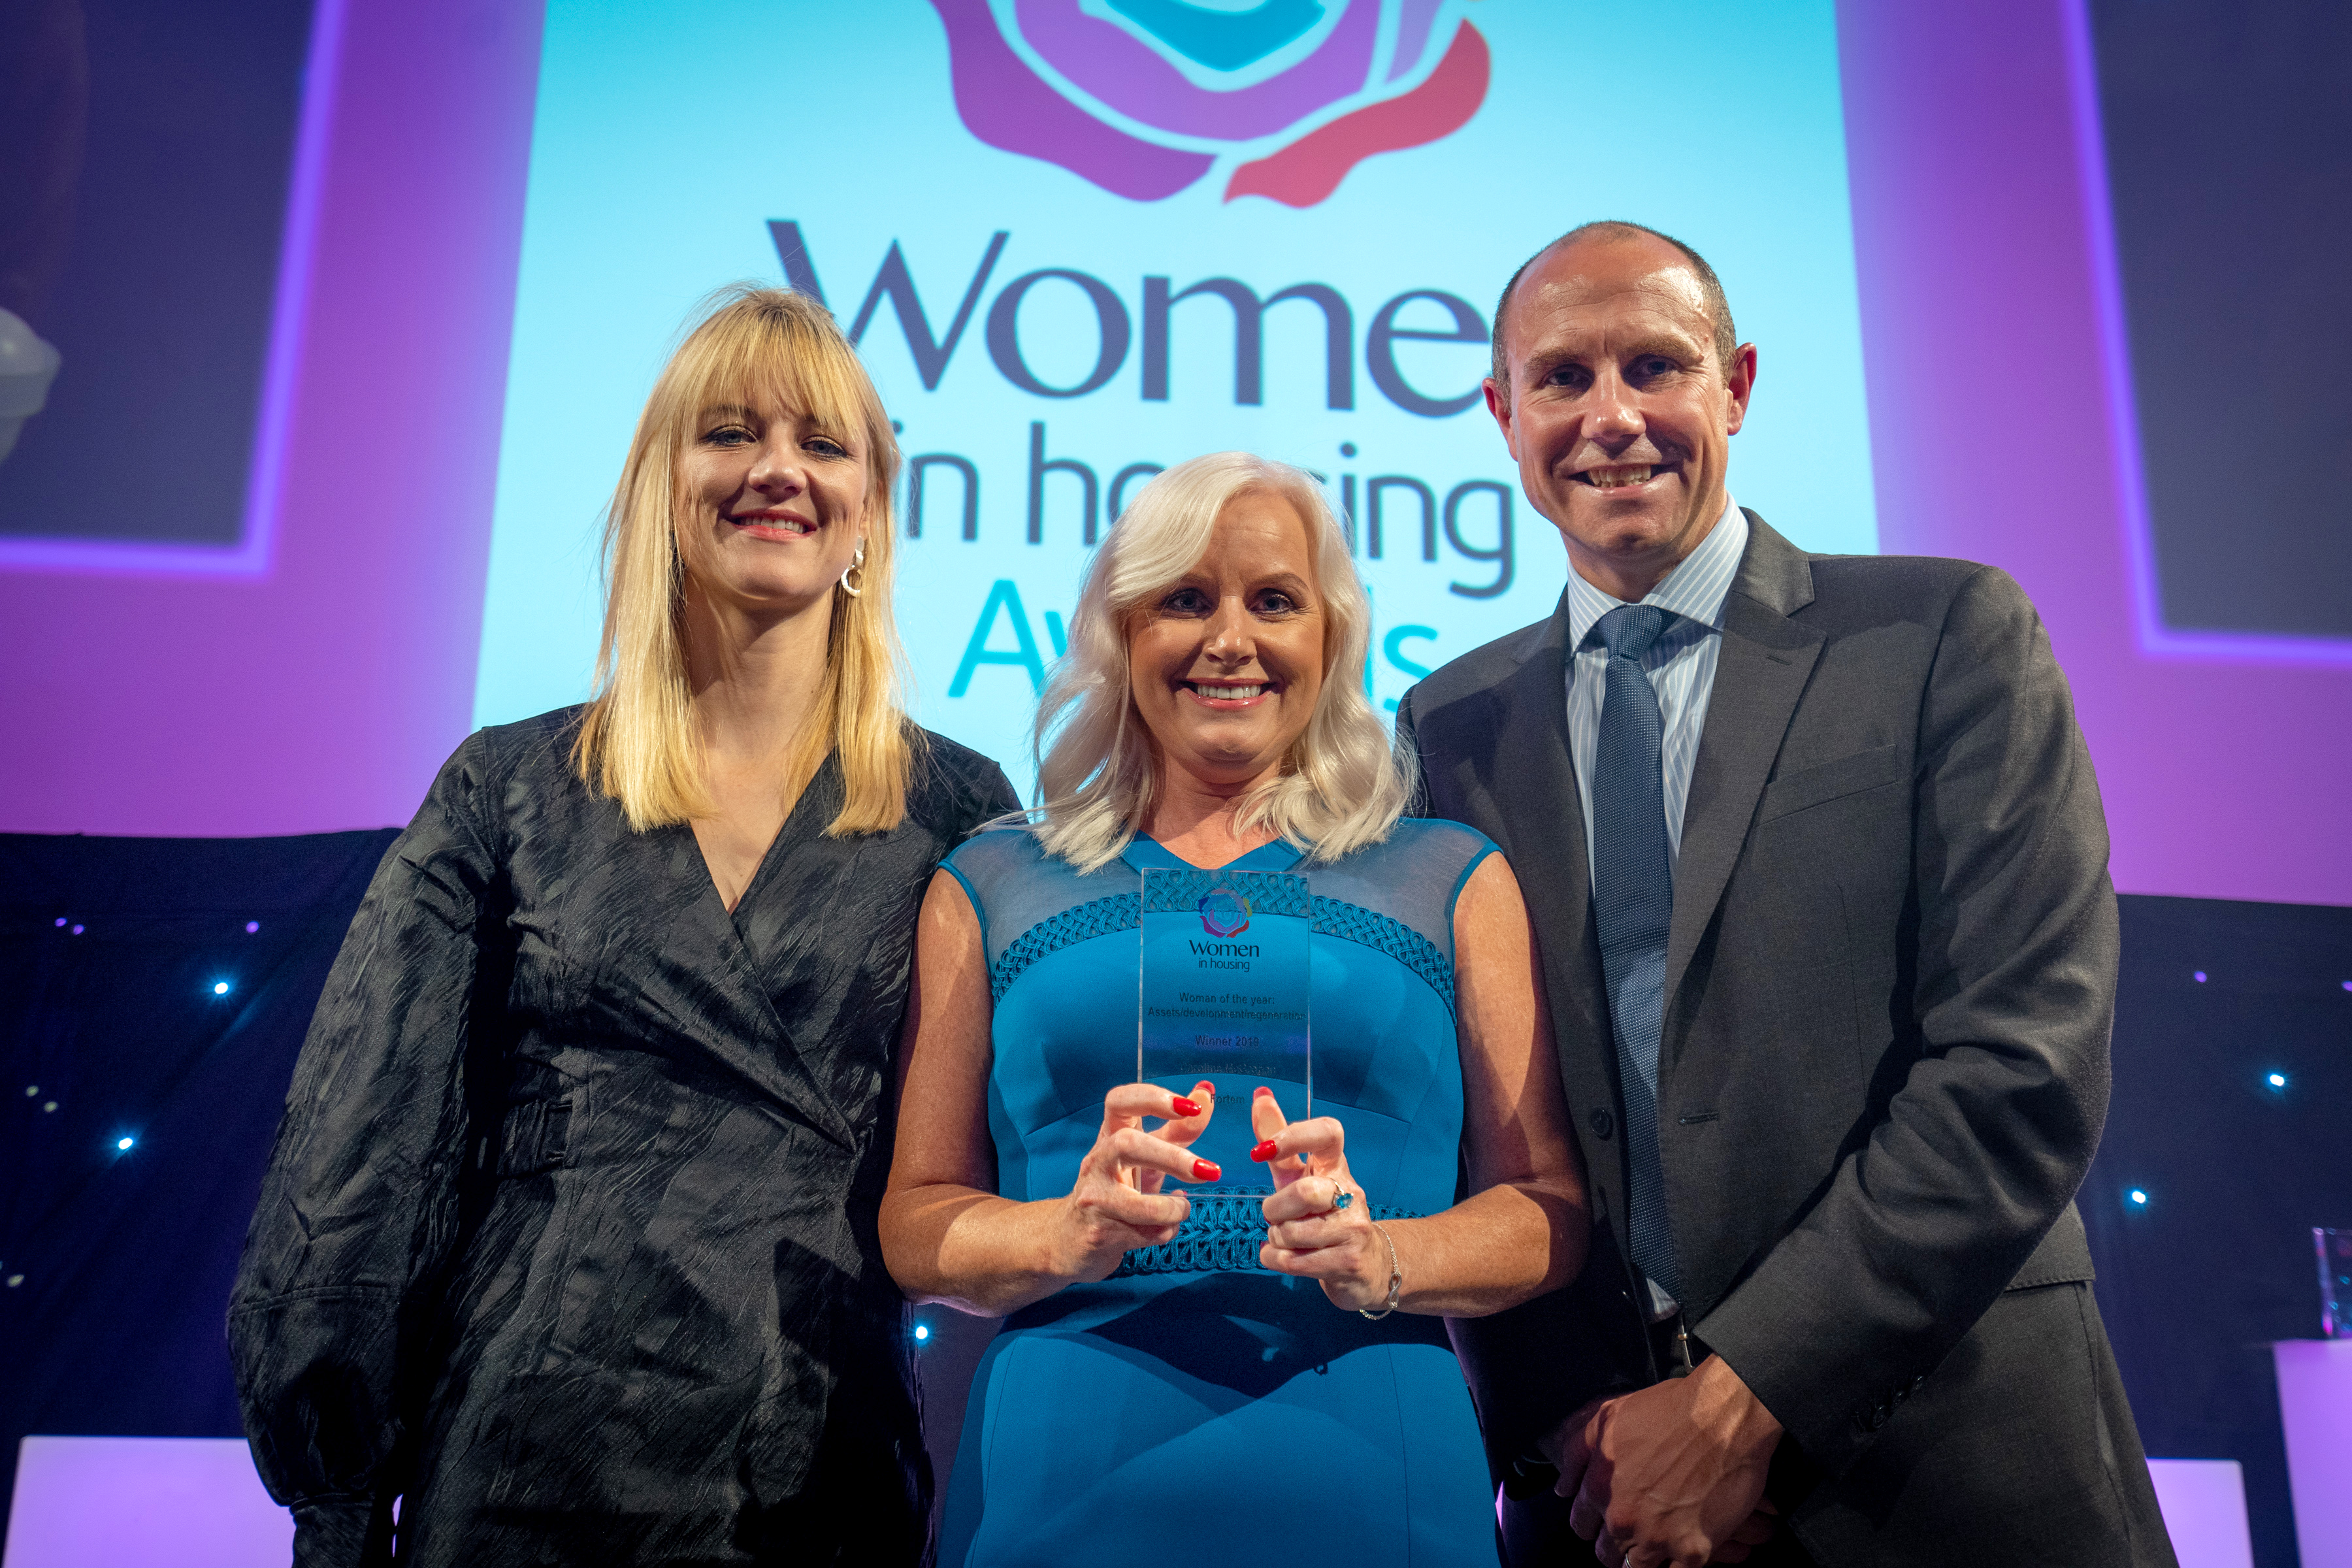 Woman of the year: assets/ development/ regeneration